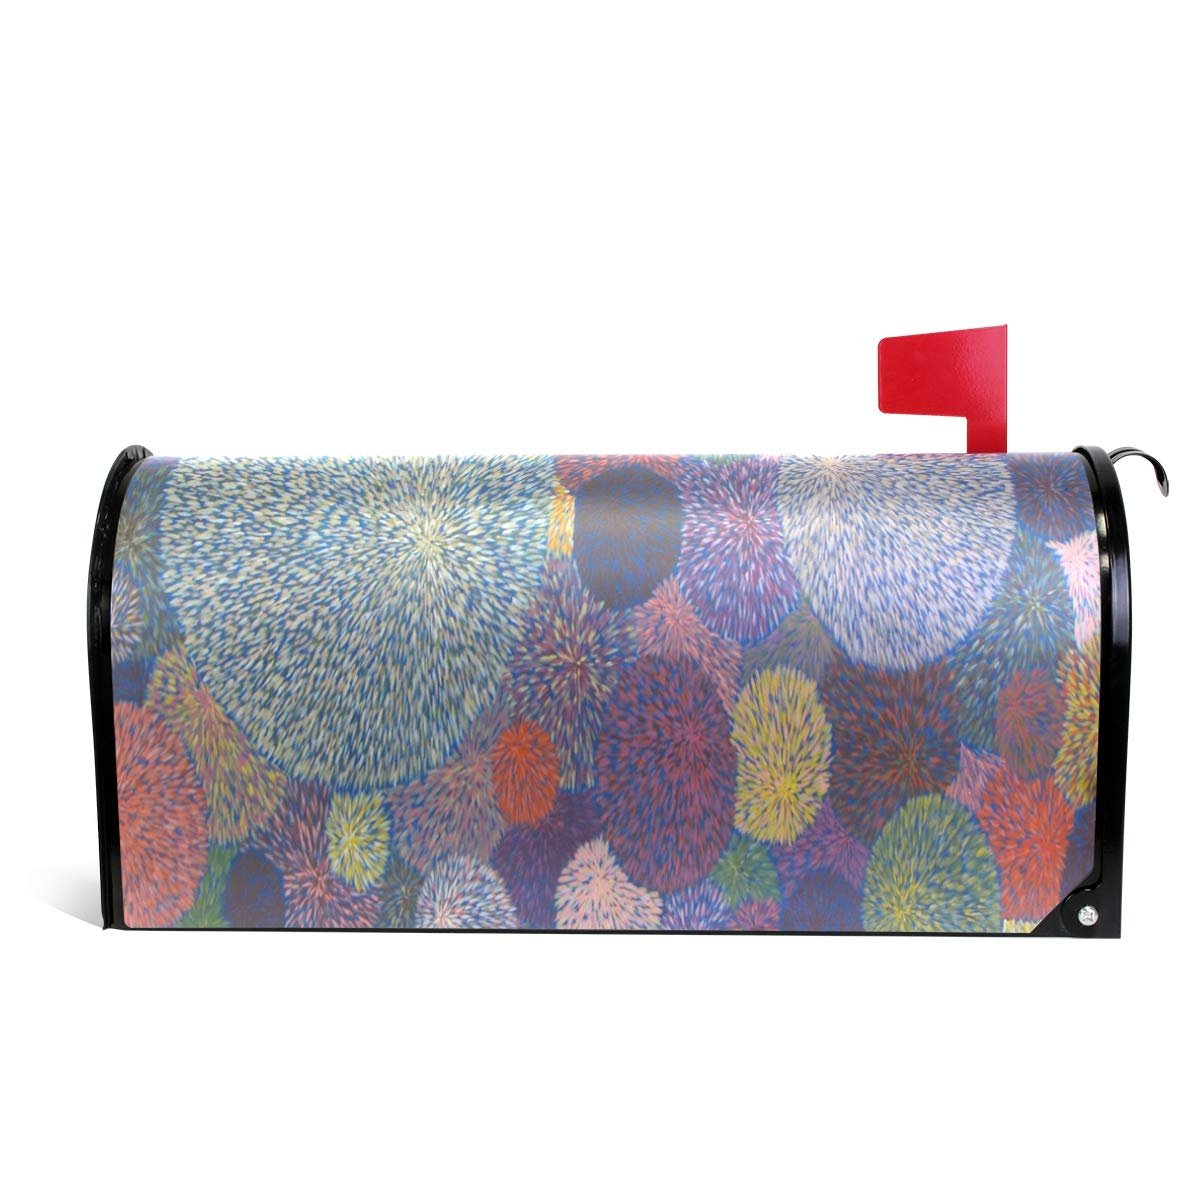 DJROW The Light Pip Hoy Magnetic Mailbox Cover Decorative Mailbox Wrap for Standard Size 64.7x52.8cm